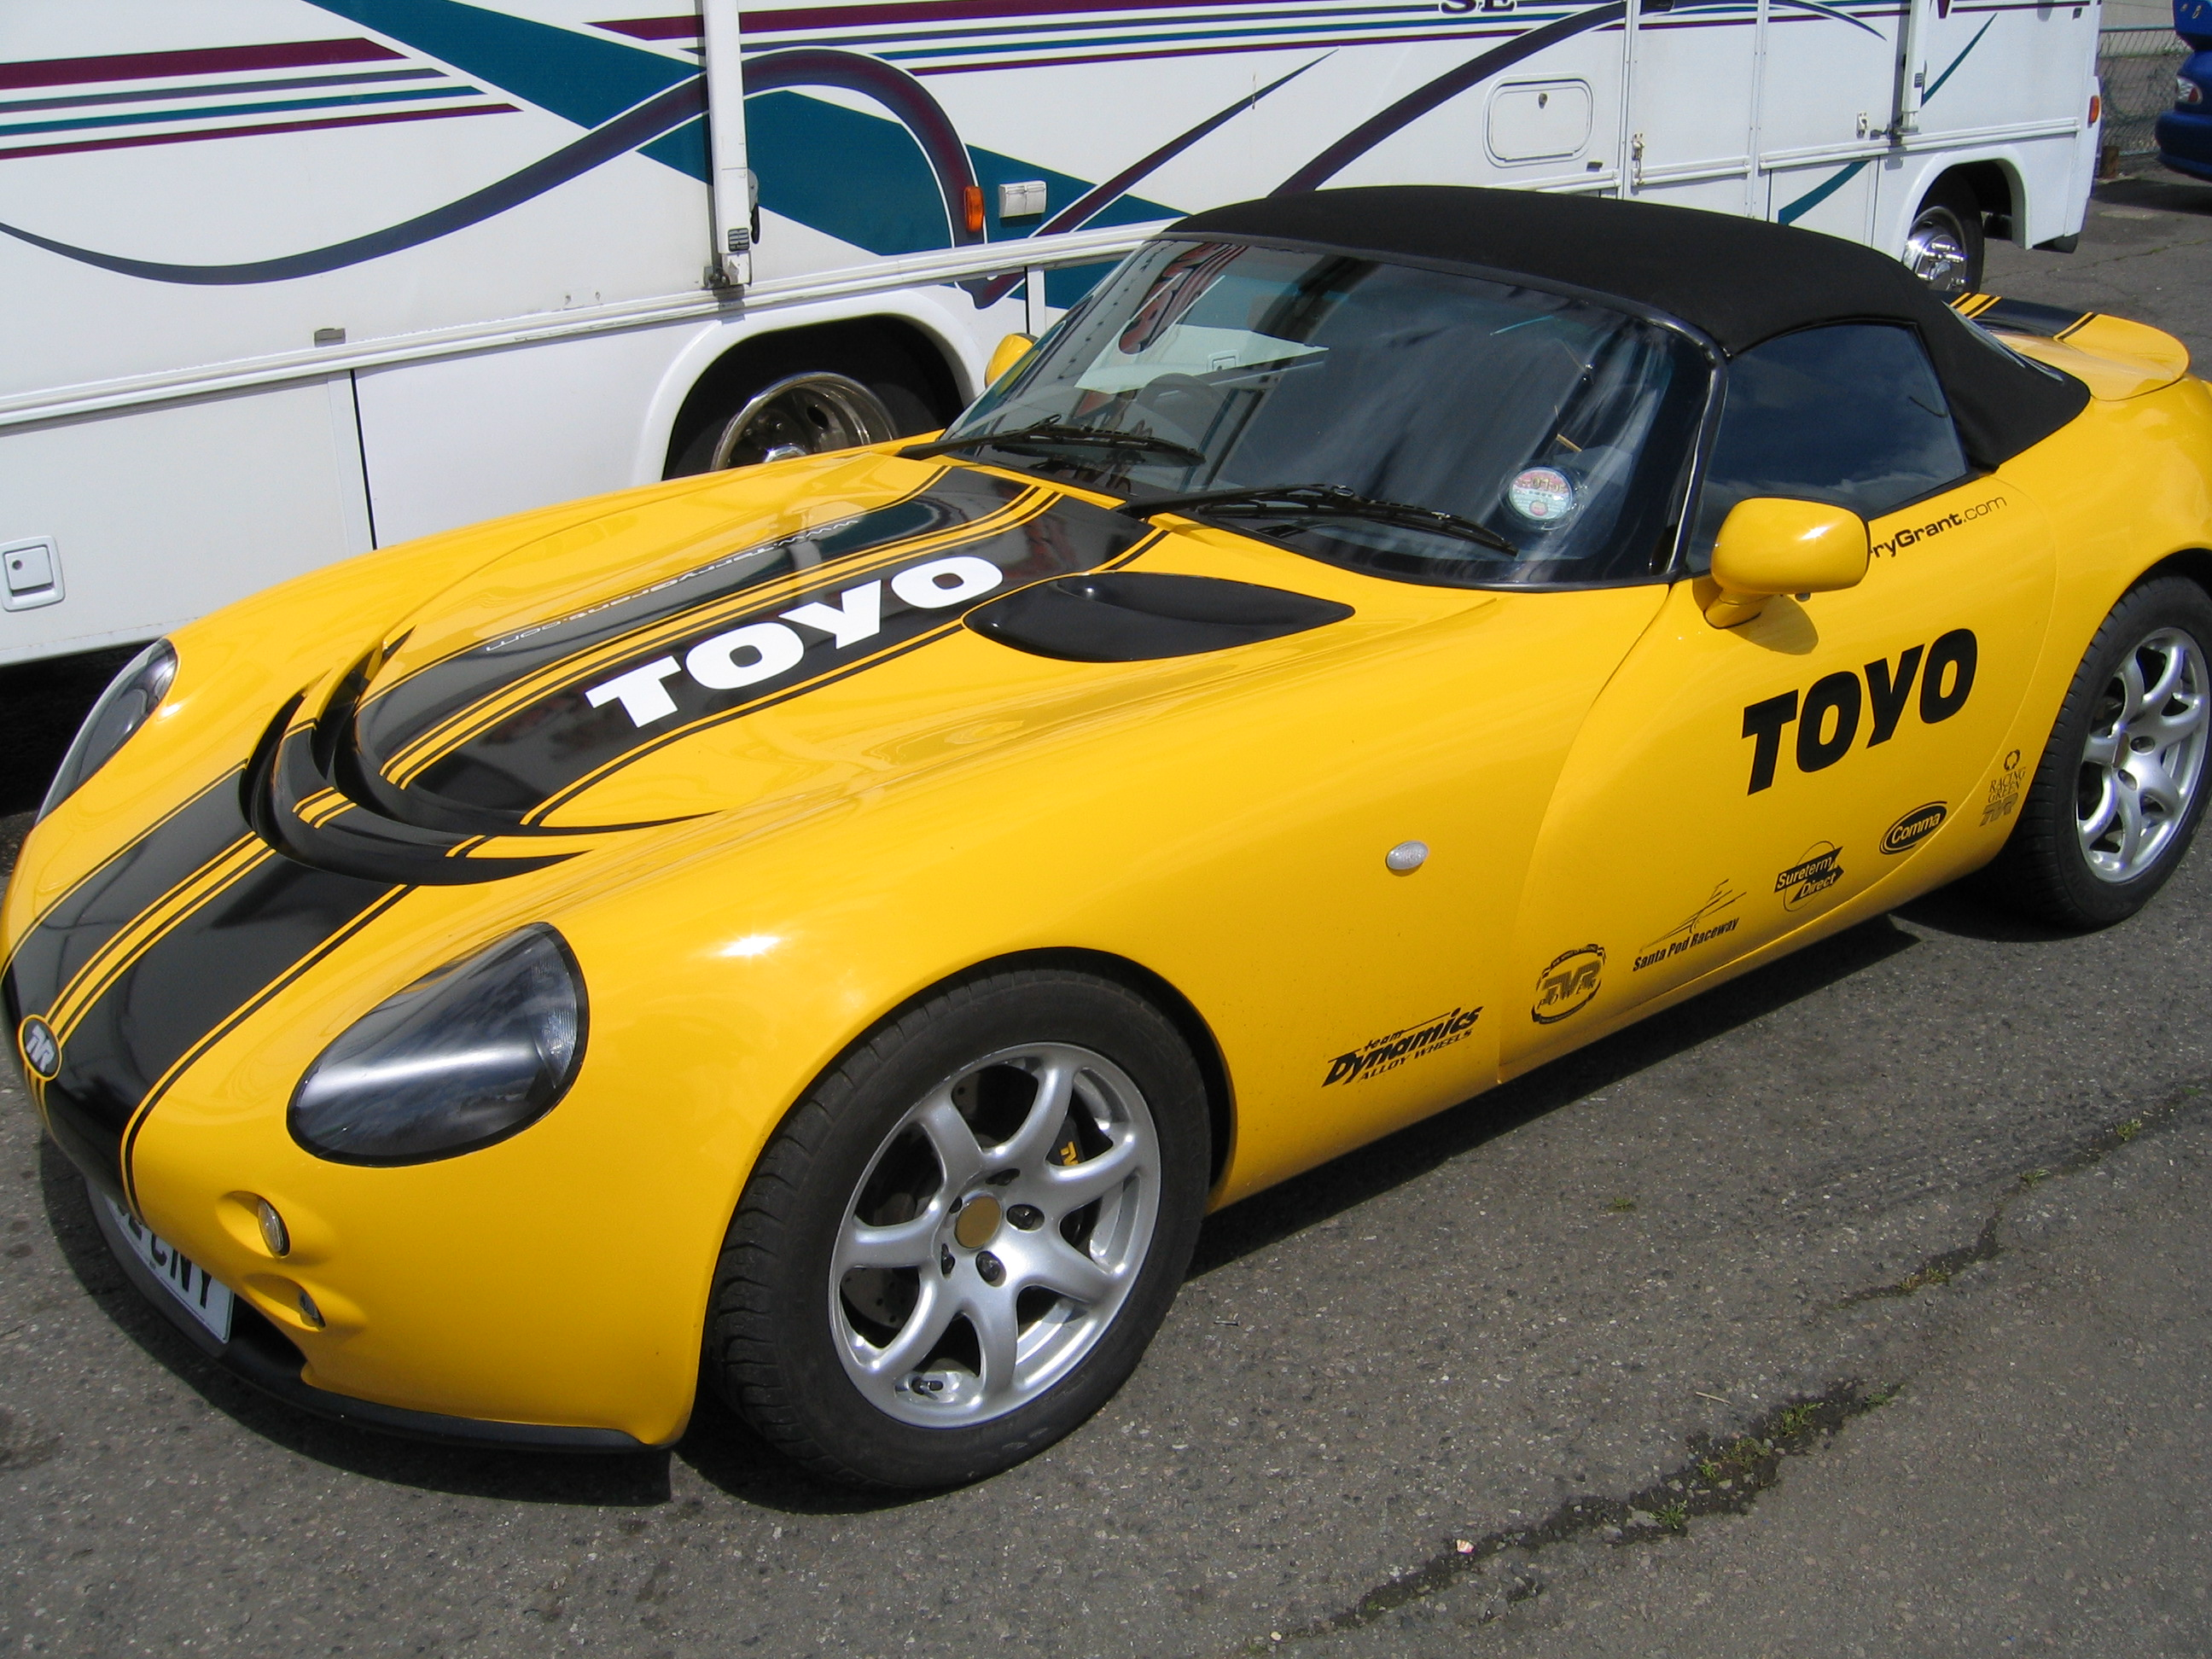 Pictures of tvr tamora